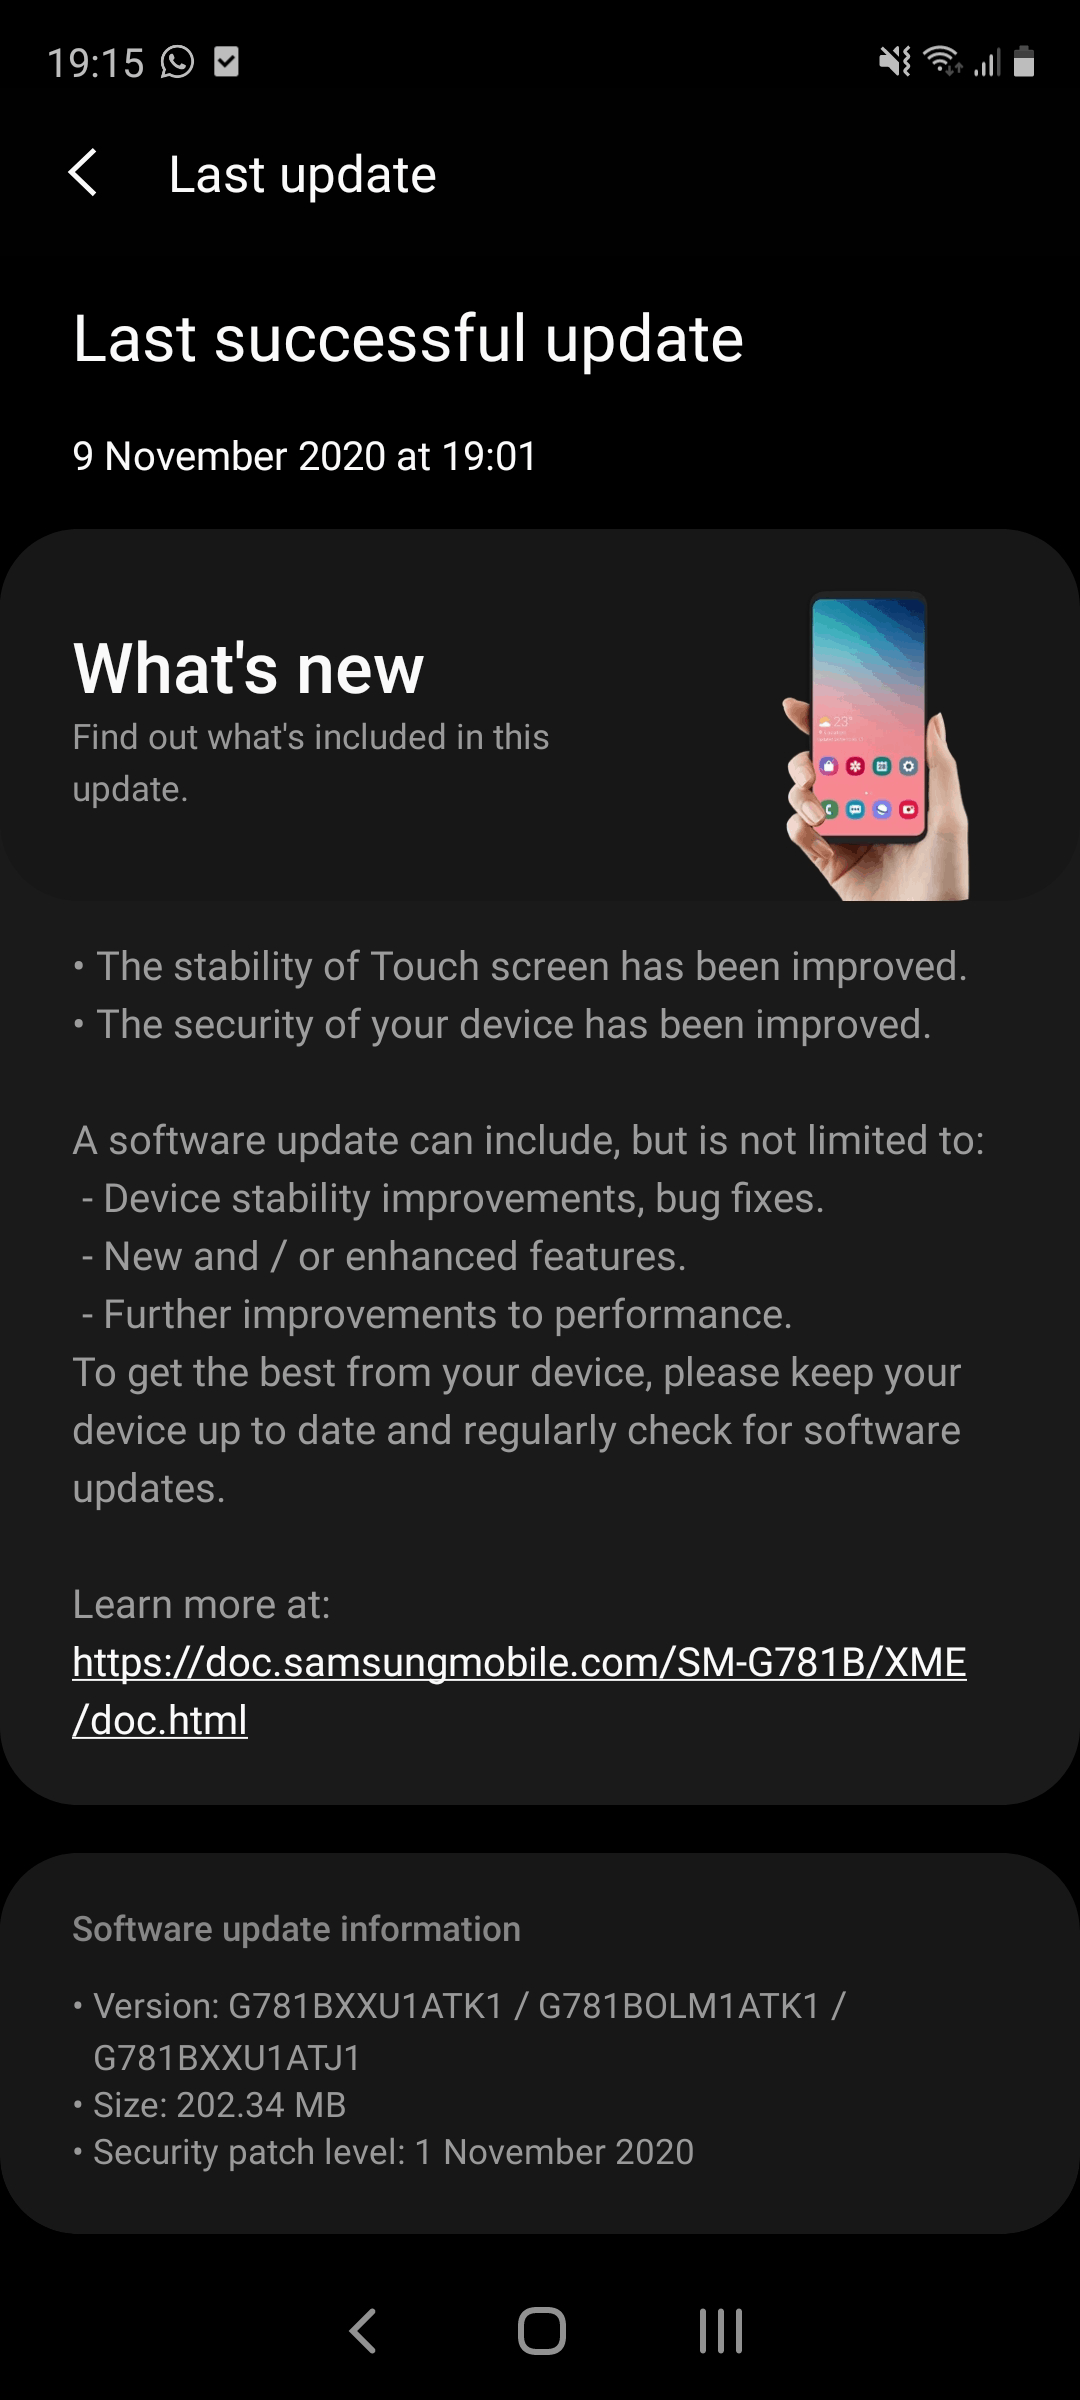 Galaxy S20 FE November update touchscreen issues